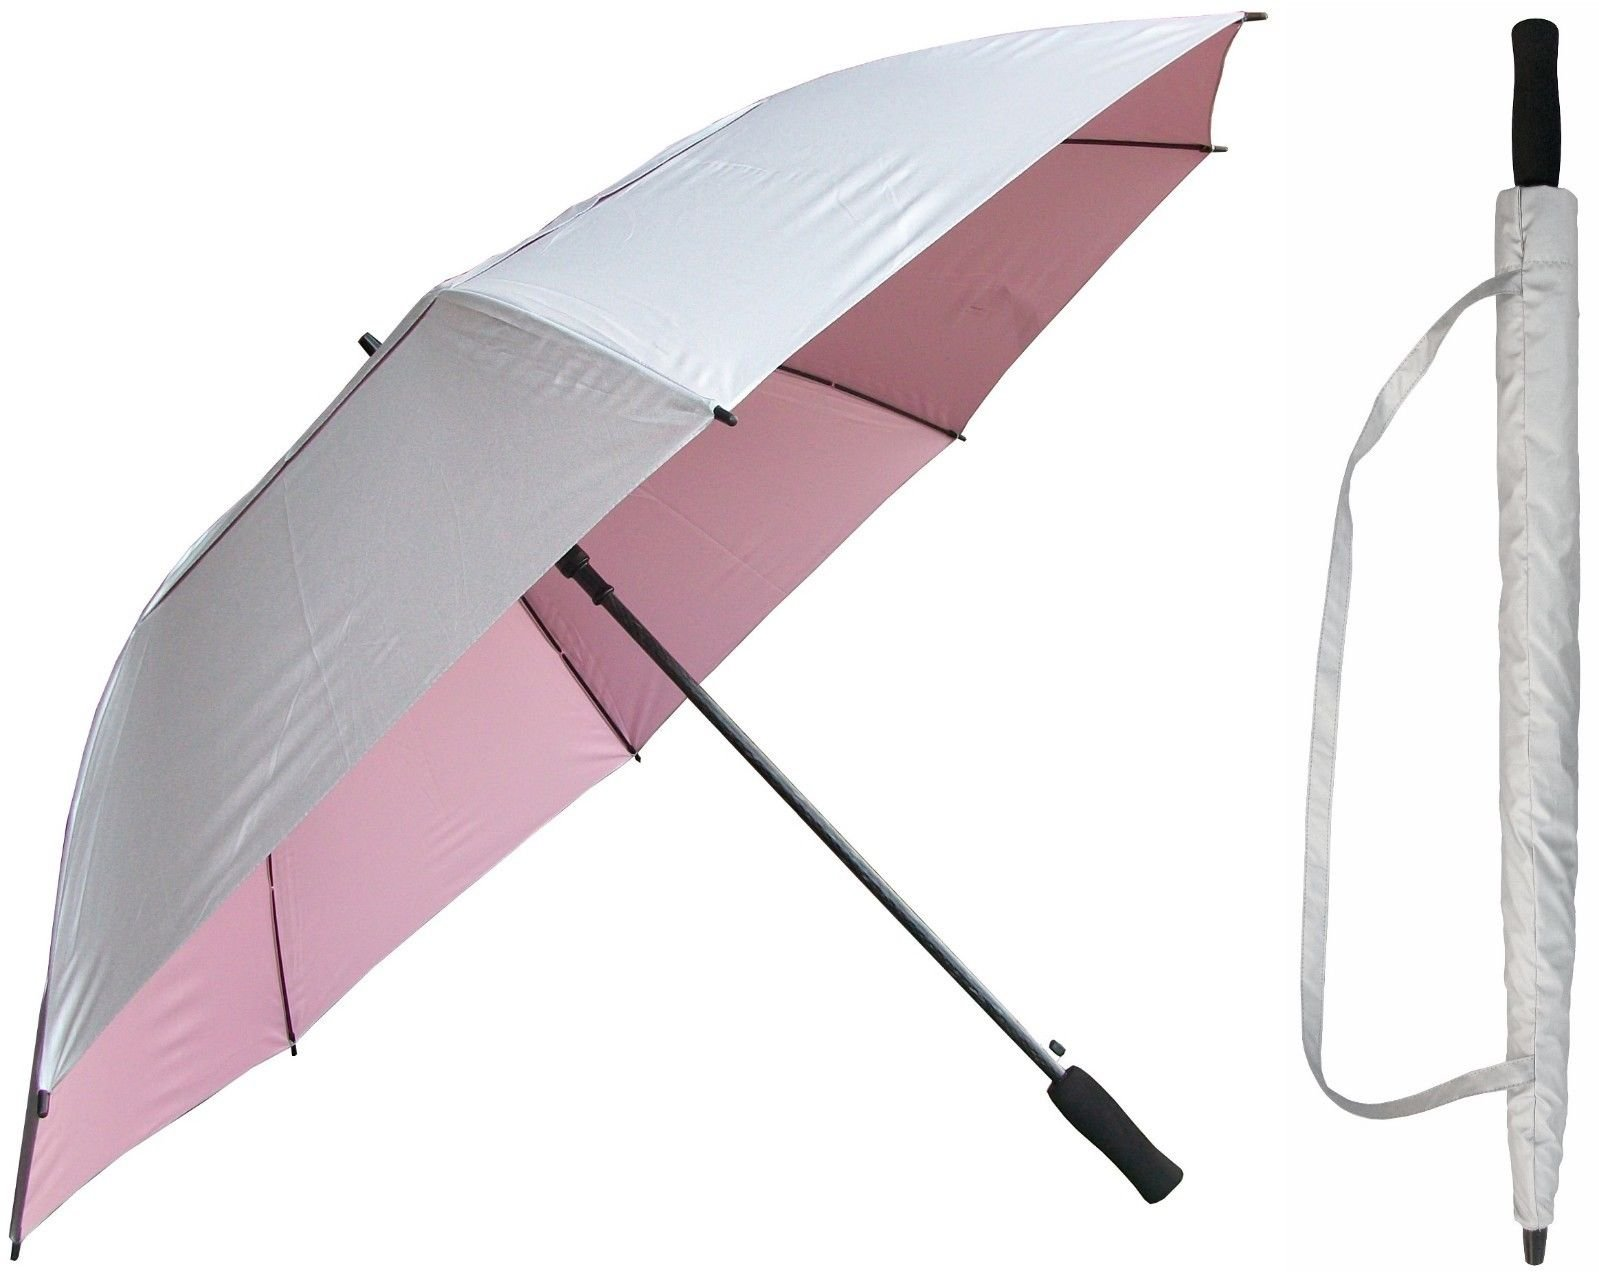 60 inch Silver & Light Pink Golf Umbrella - Vented Double-Canopy - Auto Open Button - Fiberglass Shaft and Frame - Windproof Stick Umbrellas by Adjore (Image #1)